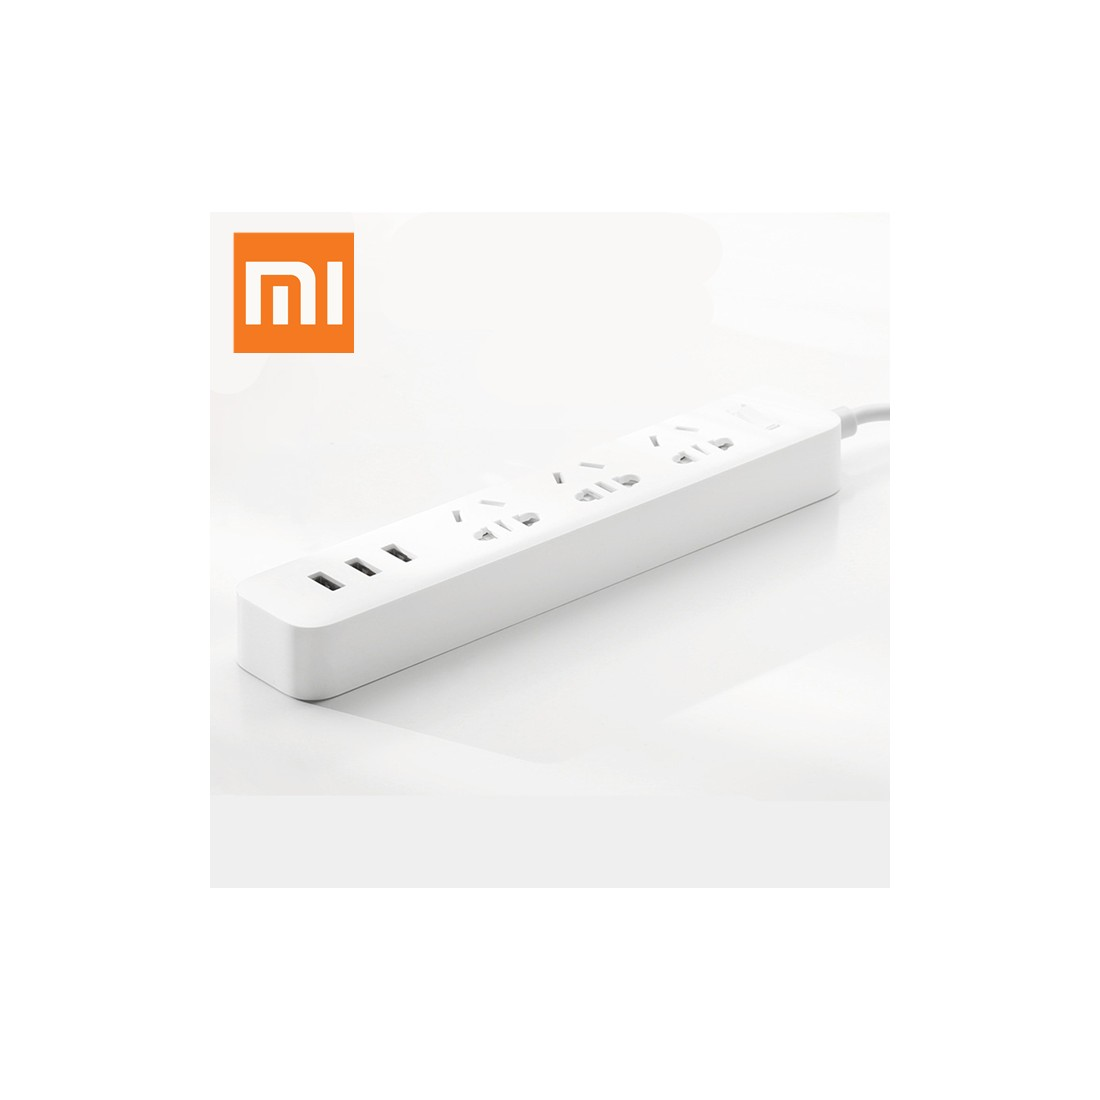 XiaoMi Mini Power Strip, 3 Power Outlets with 3 USB  -  WHITE